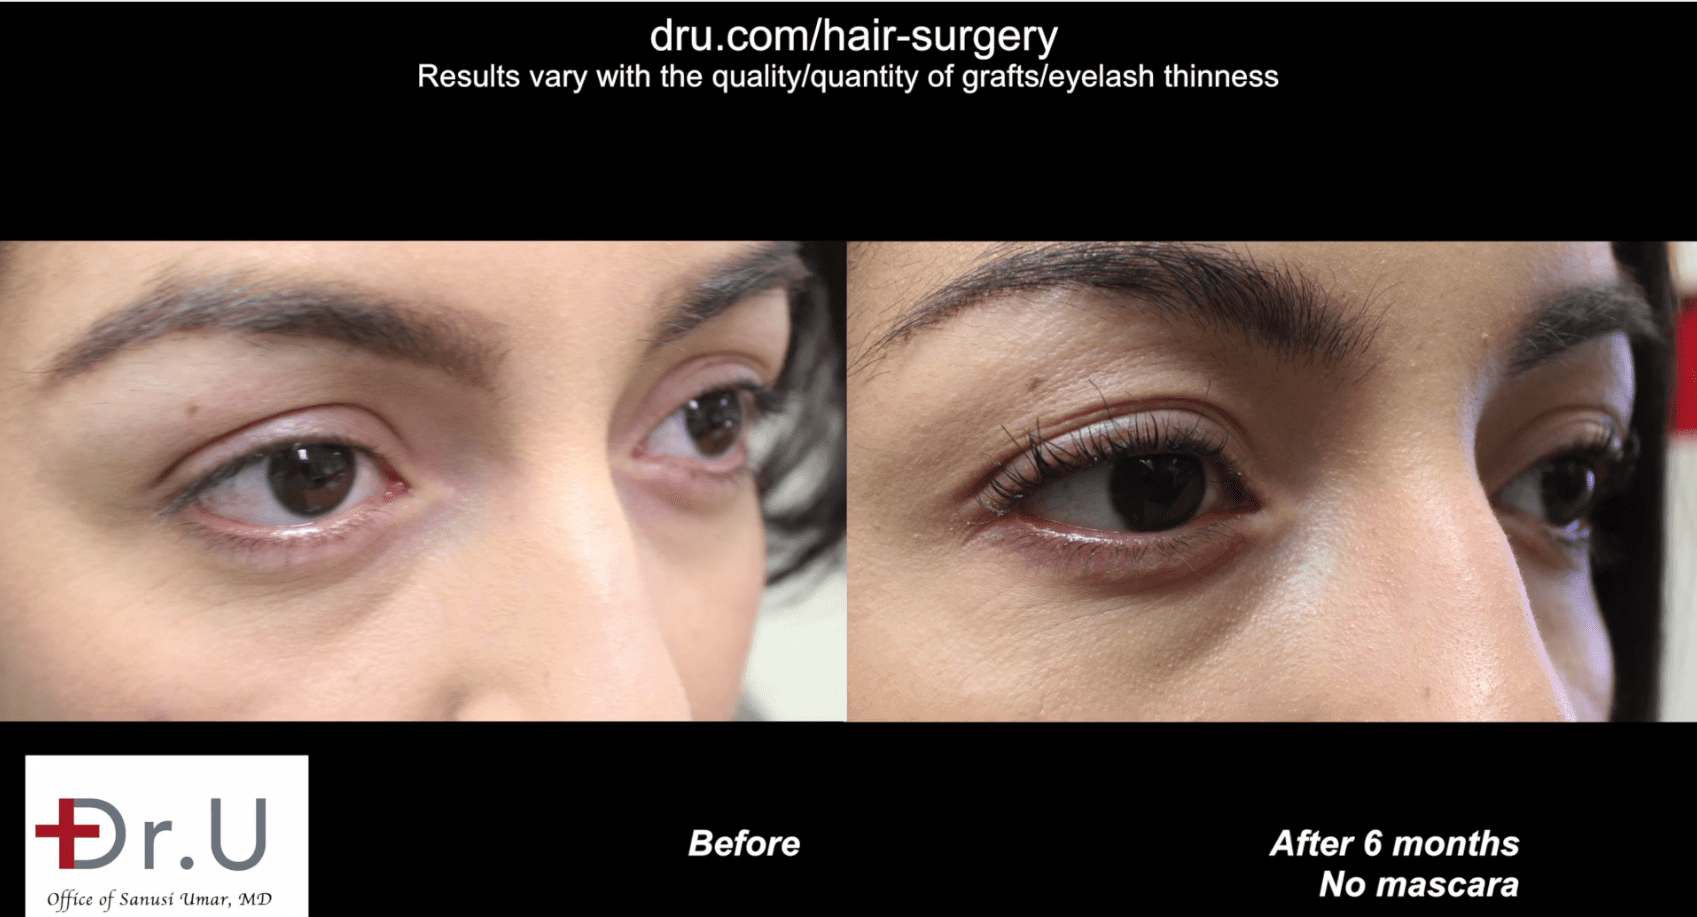 6 months after her surgery, the patient enjoys the fact that her permanent eyelashes require much less perming